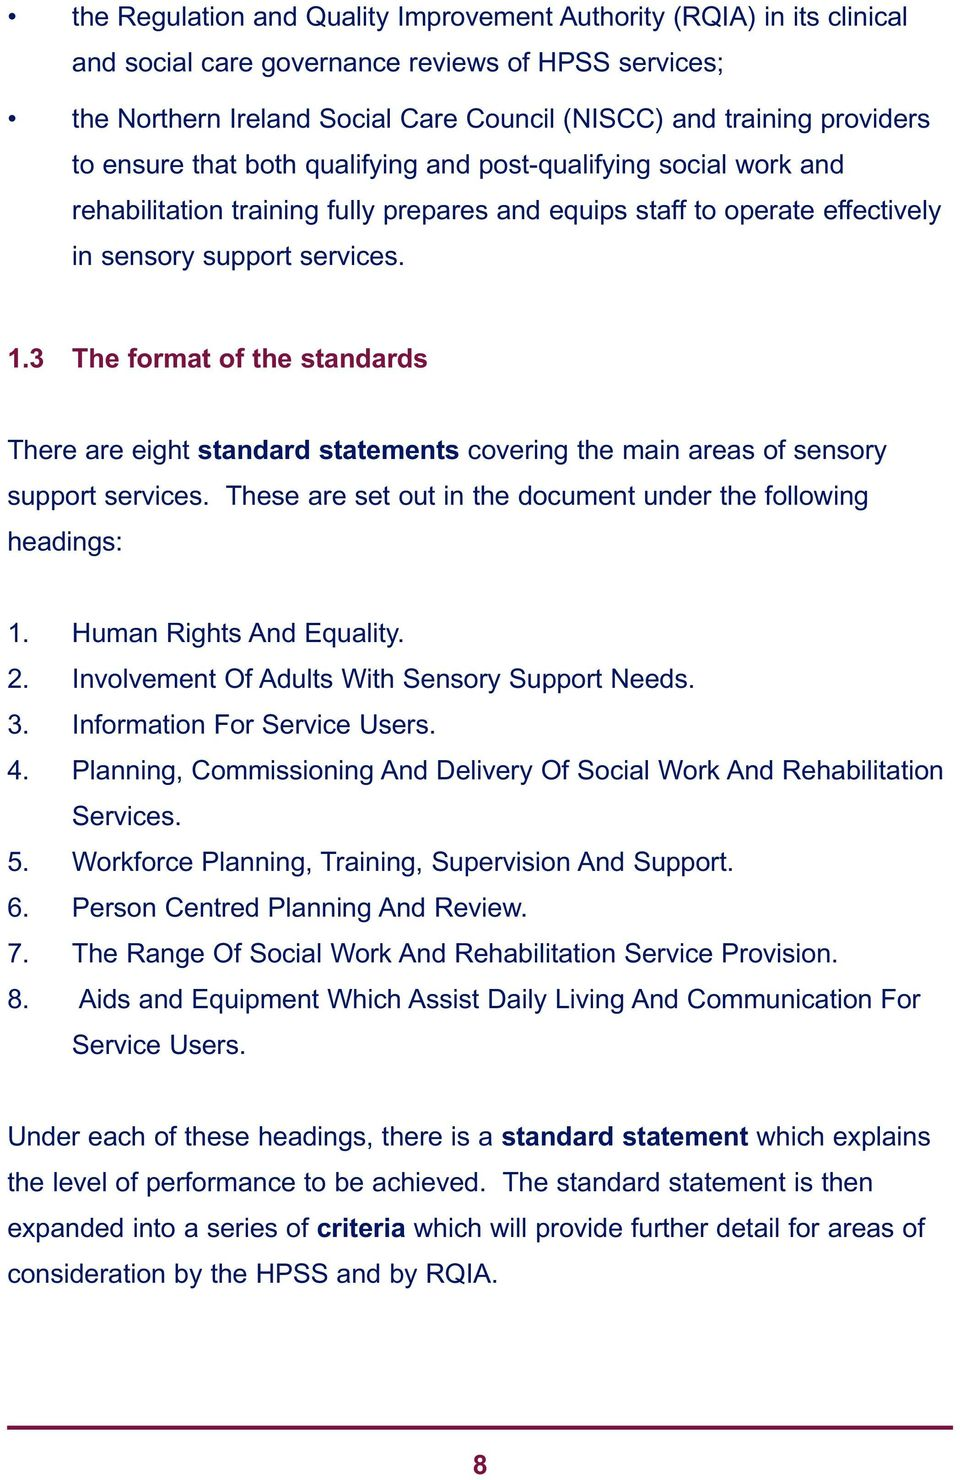 3 The format of the standards There are eight standard statements covering the main areas of sensory support services. These are set out in the document under the following headings: 1.